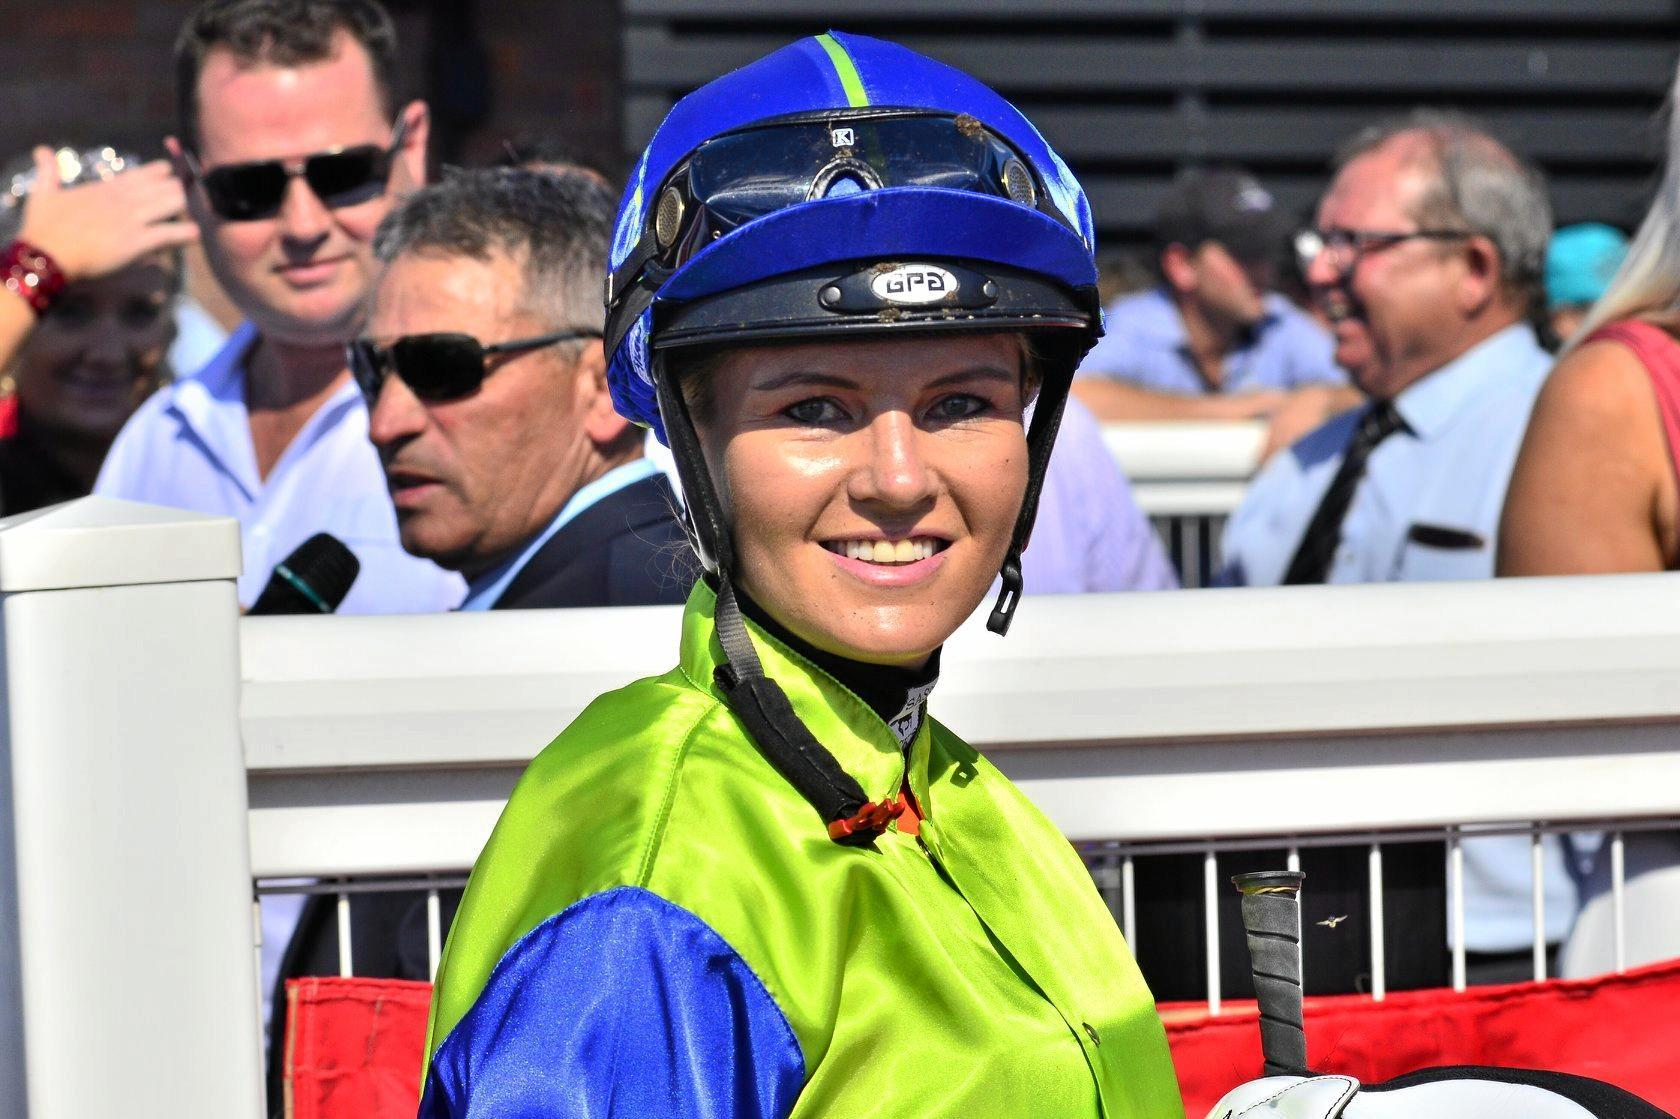 BACK ON SONG: Emma Ljung in the Clifford Park winner's stall after scoring aboard Rock Beat at last month's Weetwood meeting.